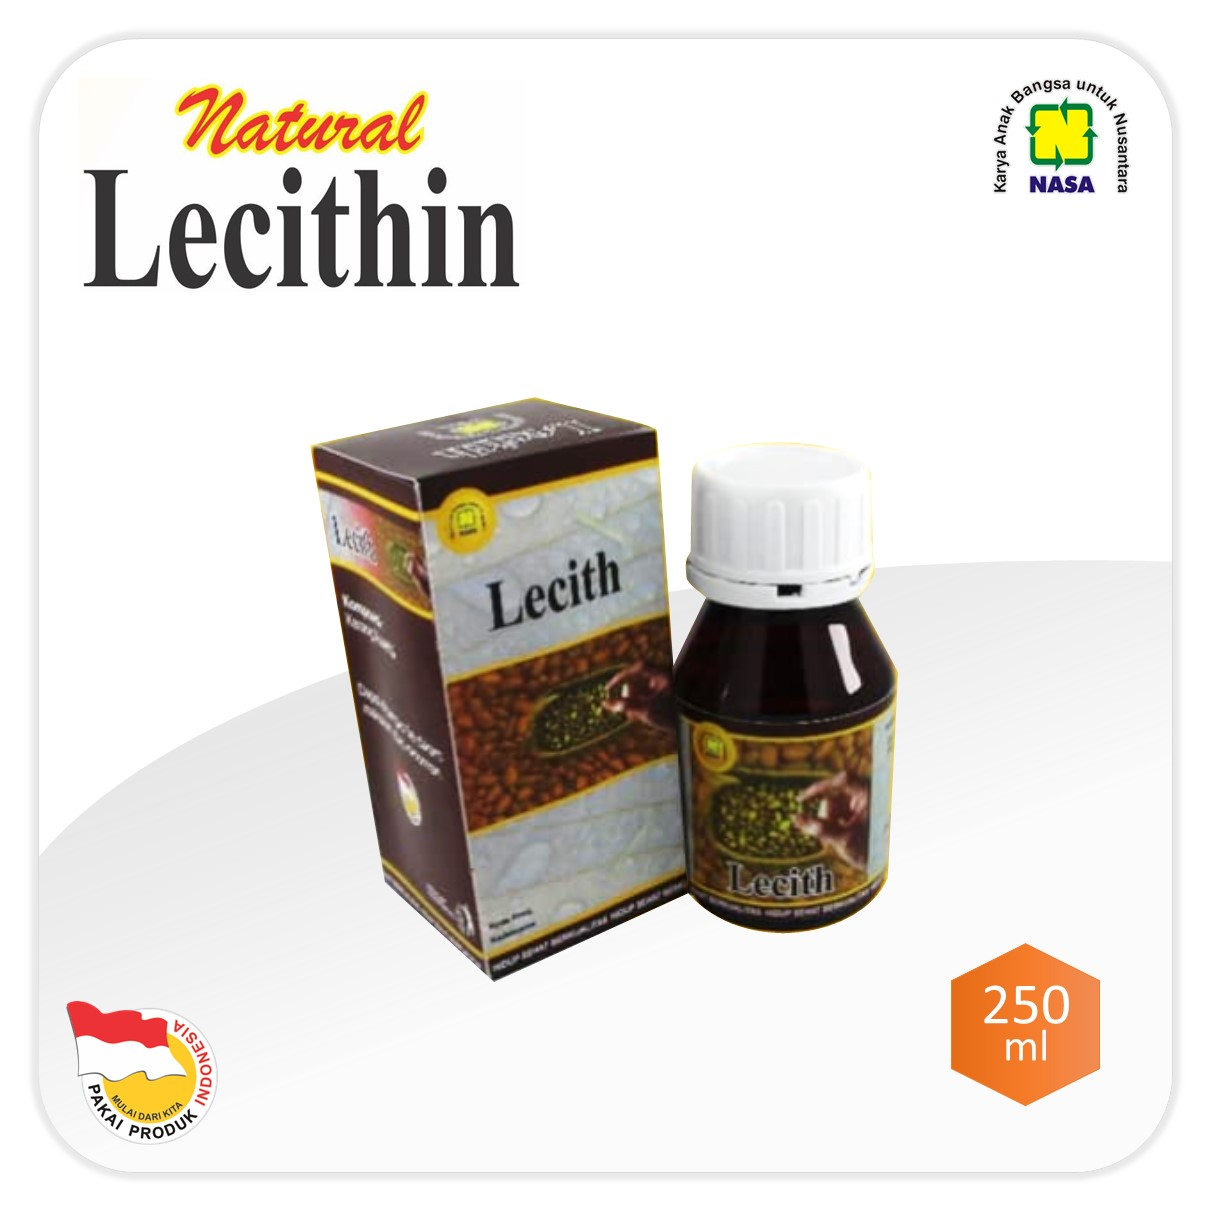 Lecith Natural Lecithin NASA